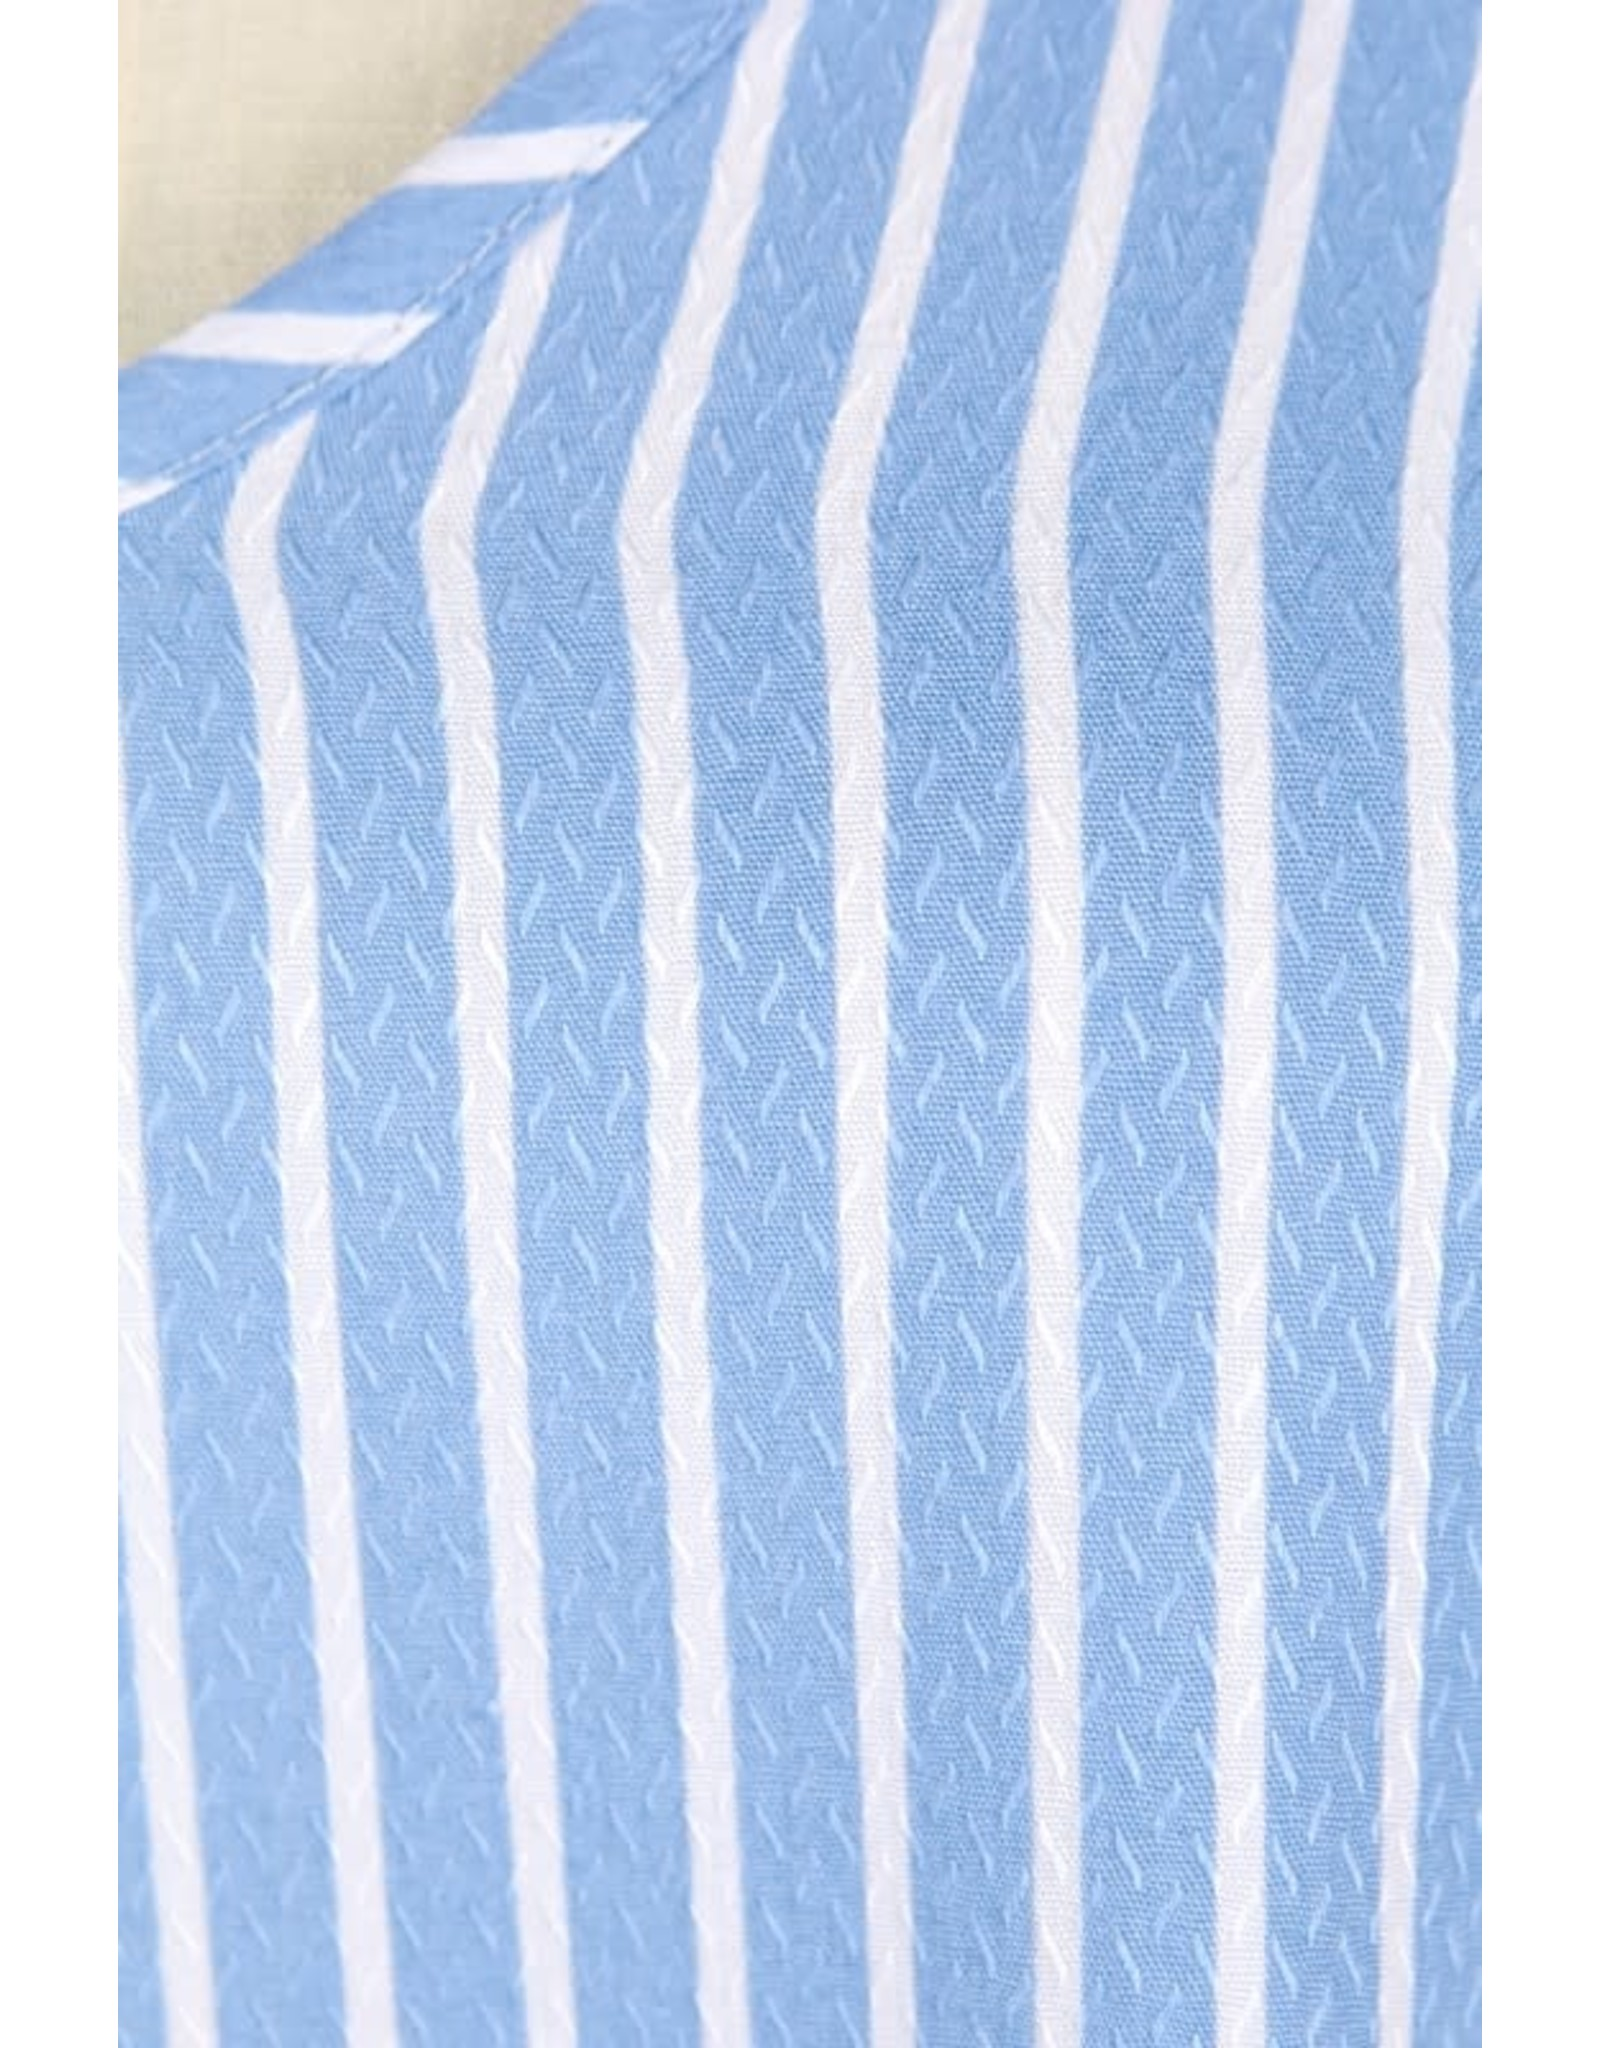 SKY BLUE TEXTURED WOVEN STRIPE DRESS WITH TIE SHOULDER